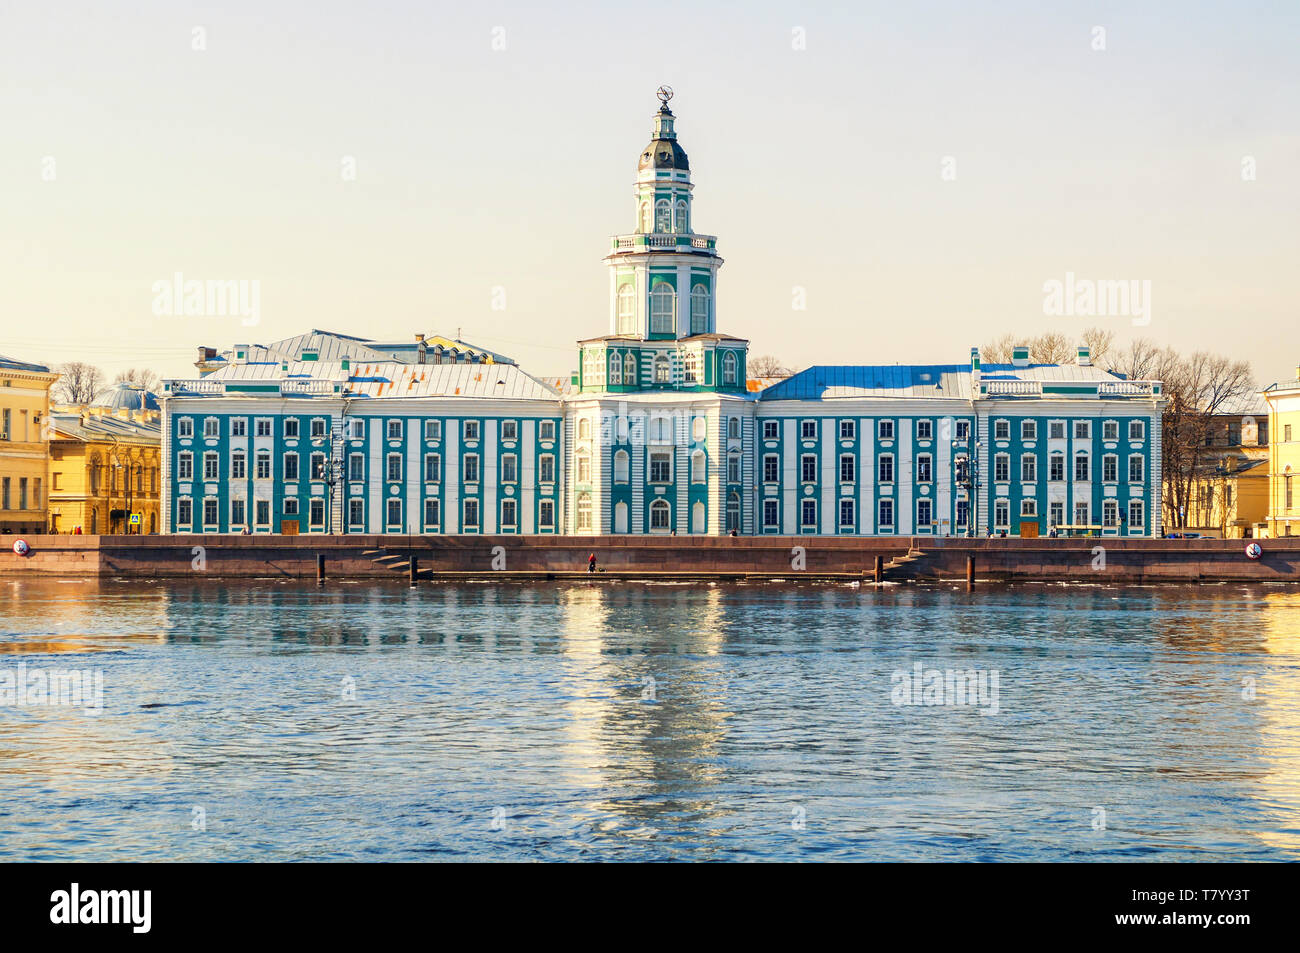 Kunstkamera building at the University embankment of Neva river in St Petersburg, Russia. The Kunstkamera is the first museum in Russia - Stock Image